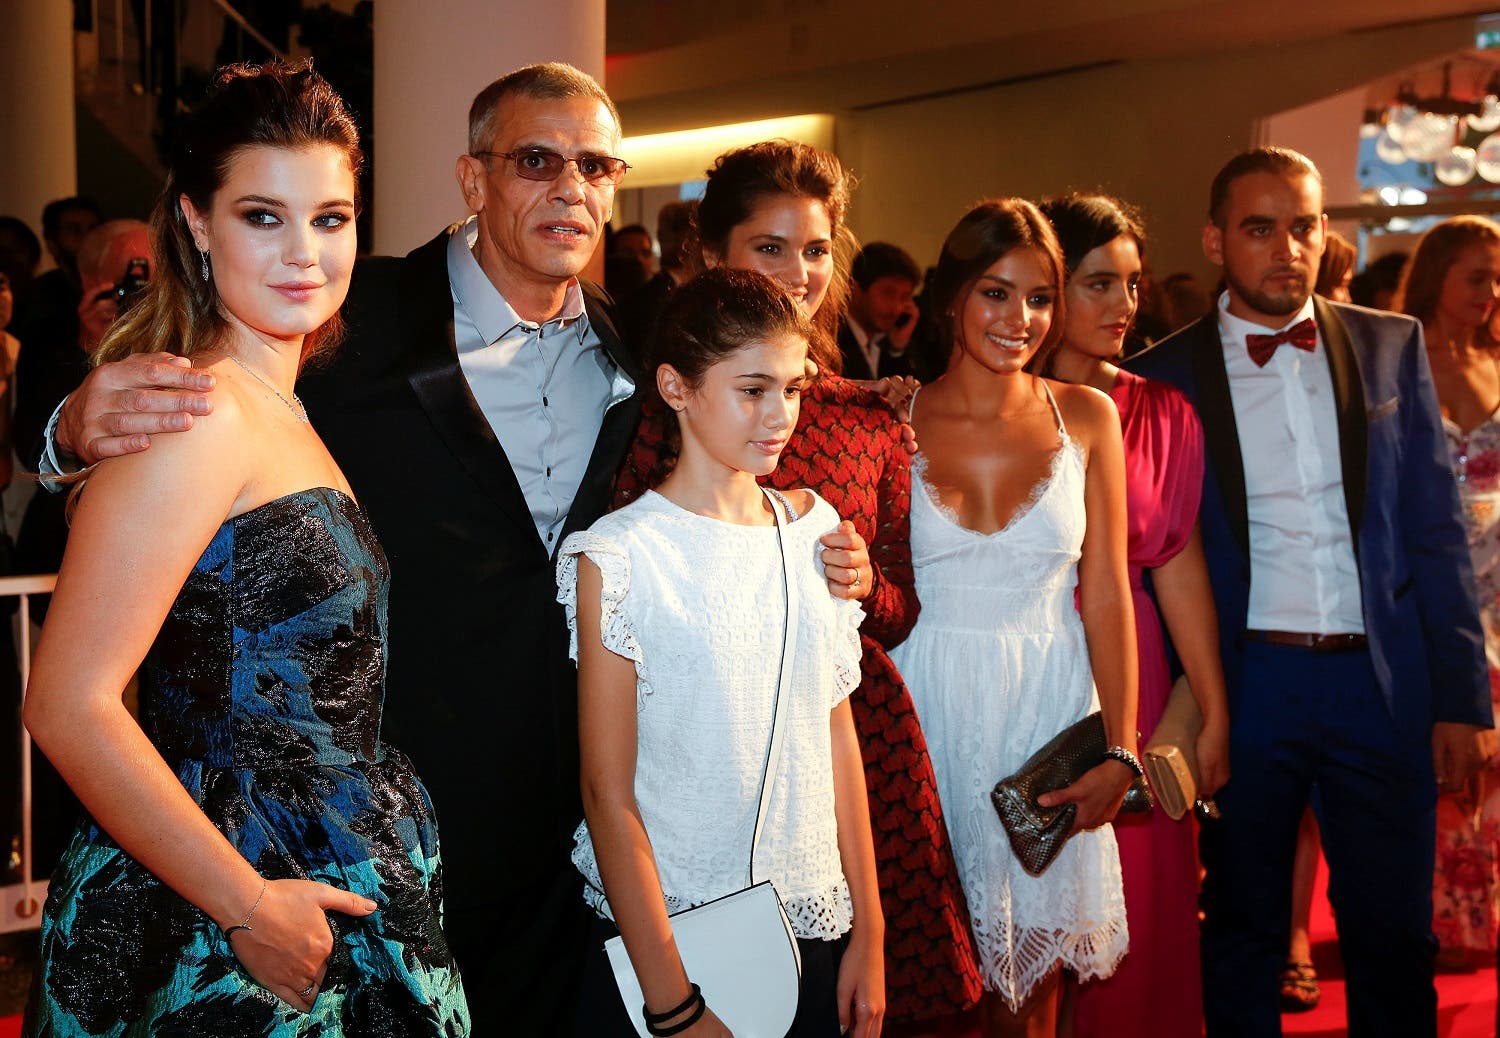 """Director Abdellatif Kechiche poses with actors Alexia Chardard, Ophelie Bau and Melinda Elastfour as they arrive during the red carpet event for the movie """"Mektoub, My Love: Canto Uno"""" at the 74th Venice Film Festival in Venice, Italy, September 7, 2017. (Reuters)"""